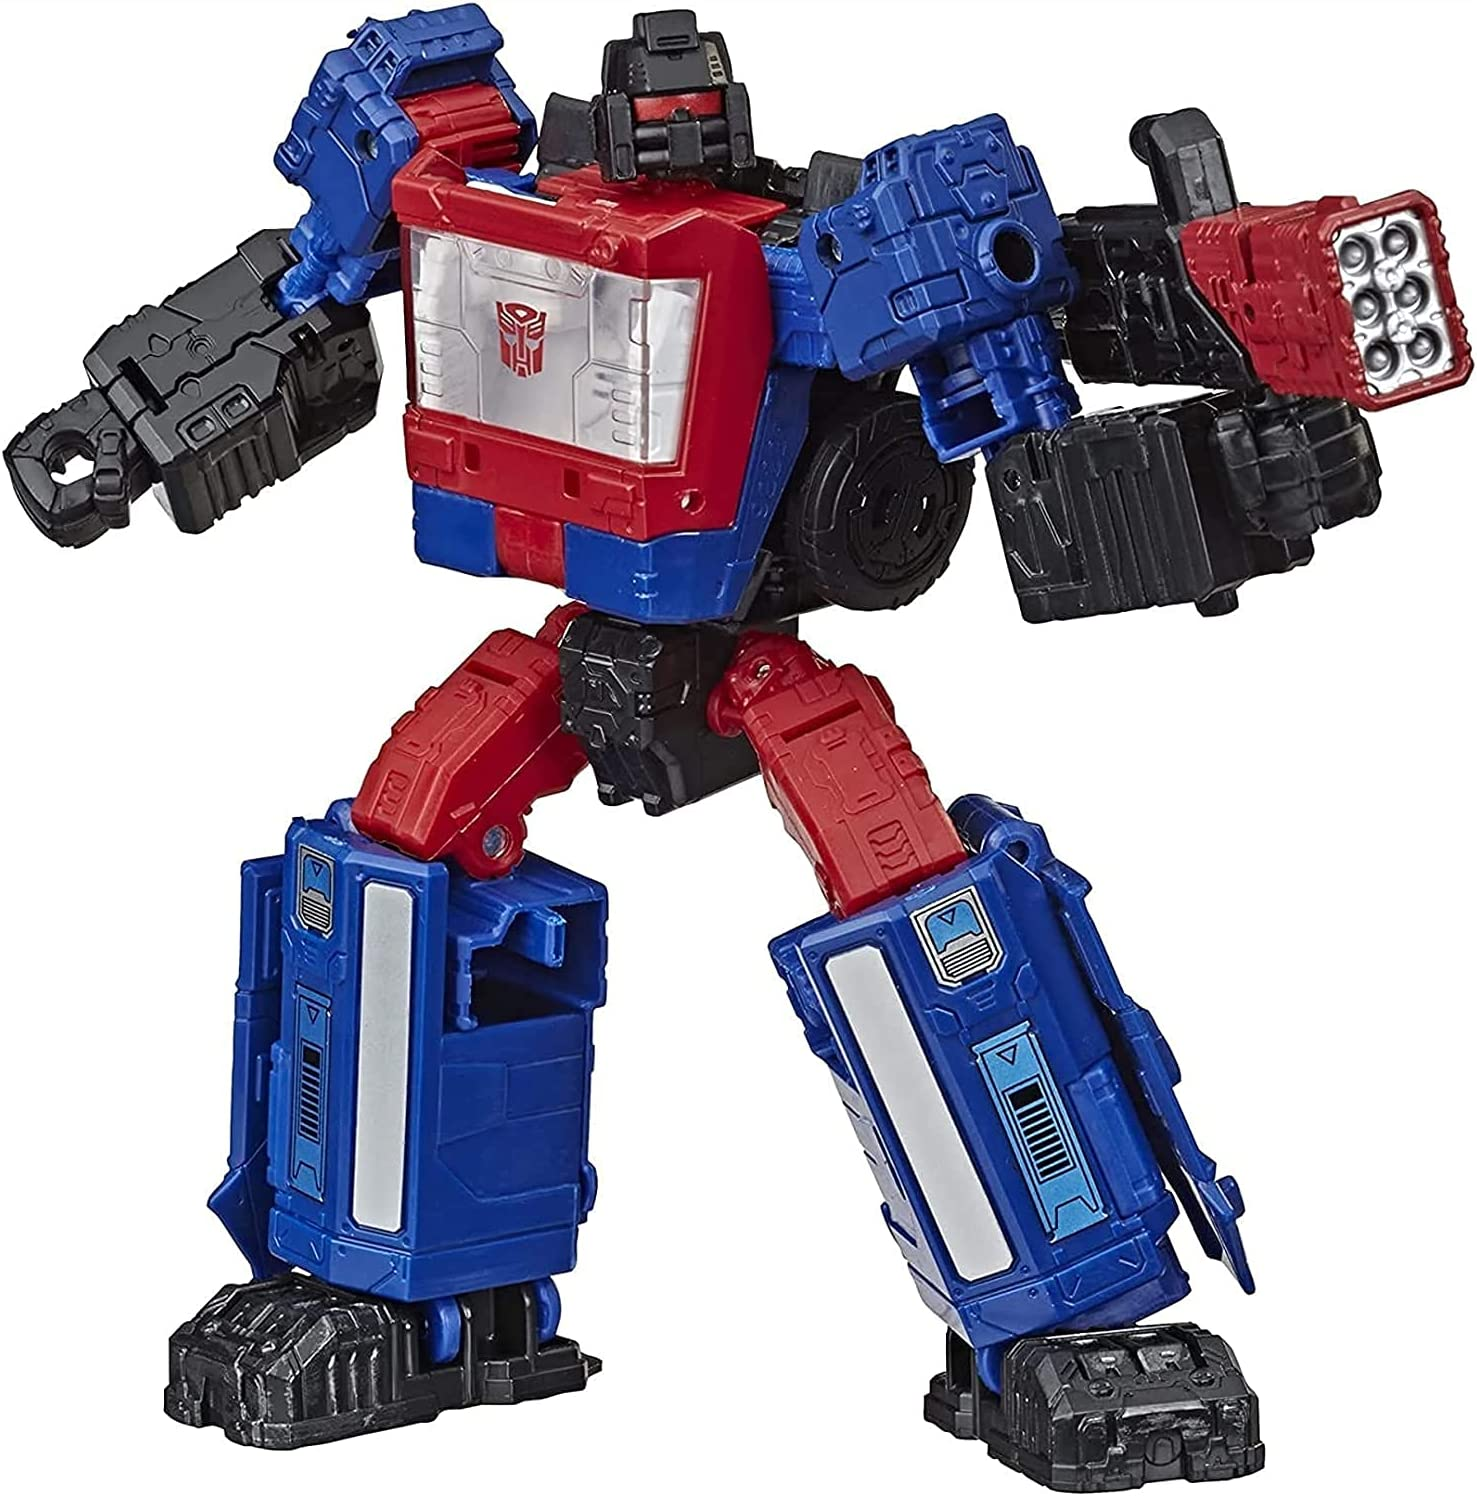 RSVPhandcrafted Trǎnsformérs Robot Toy The Height KO Max 84% OFF Tr Clearance SALE Limited time of